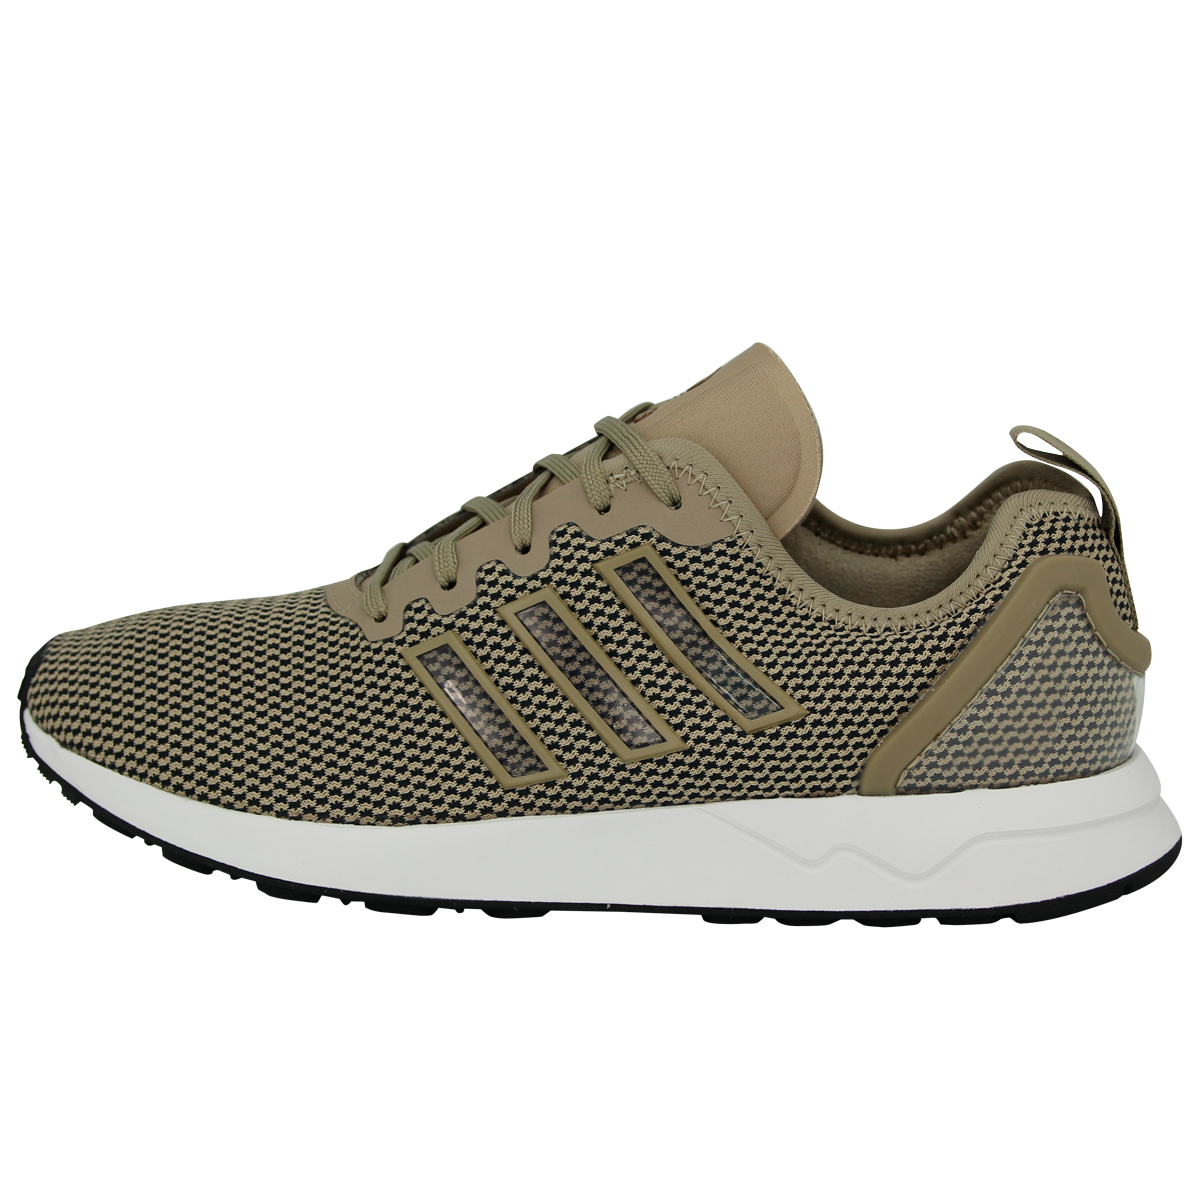 Adidas Originals ZX FLUX Braun ADV Braun FLUX Damens Sneakers Schuhes 47c4aa